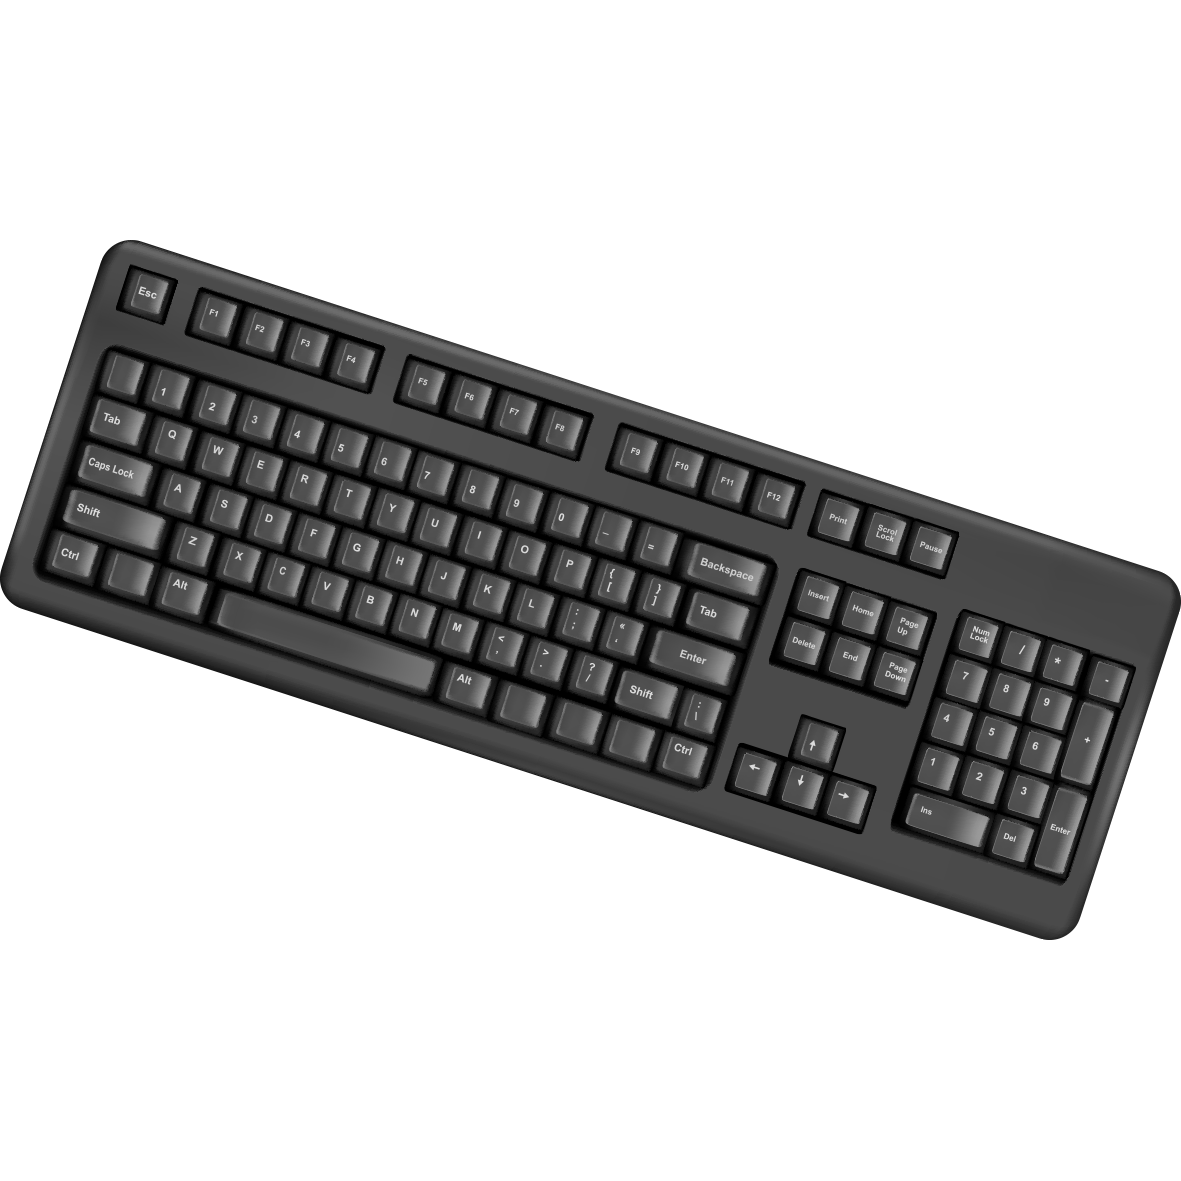 Clipart picture of computer keyboard clipart royalty free stock Computer keyboard Laptop PS/2 port Clip art - Creative black ... clipart royalty free stock